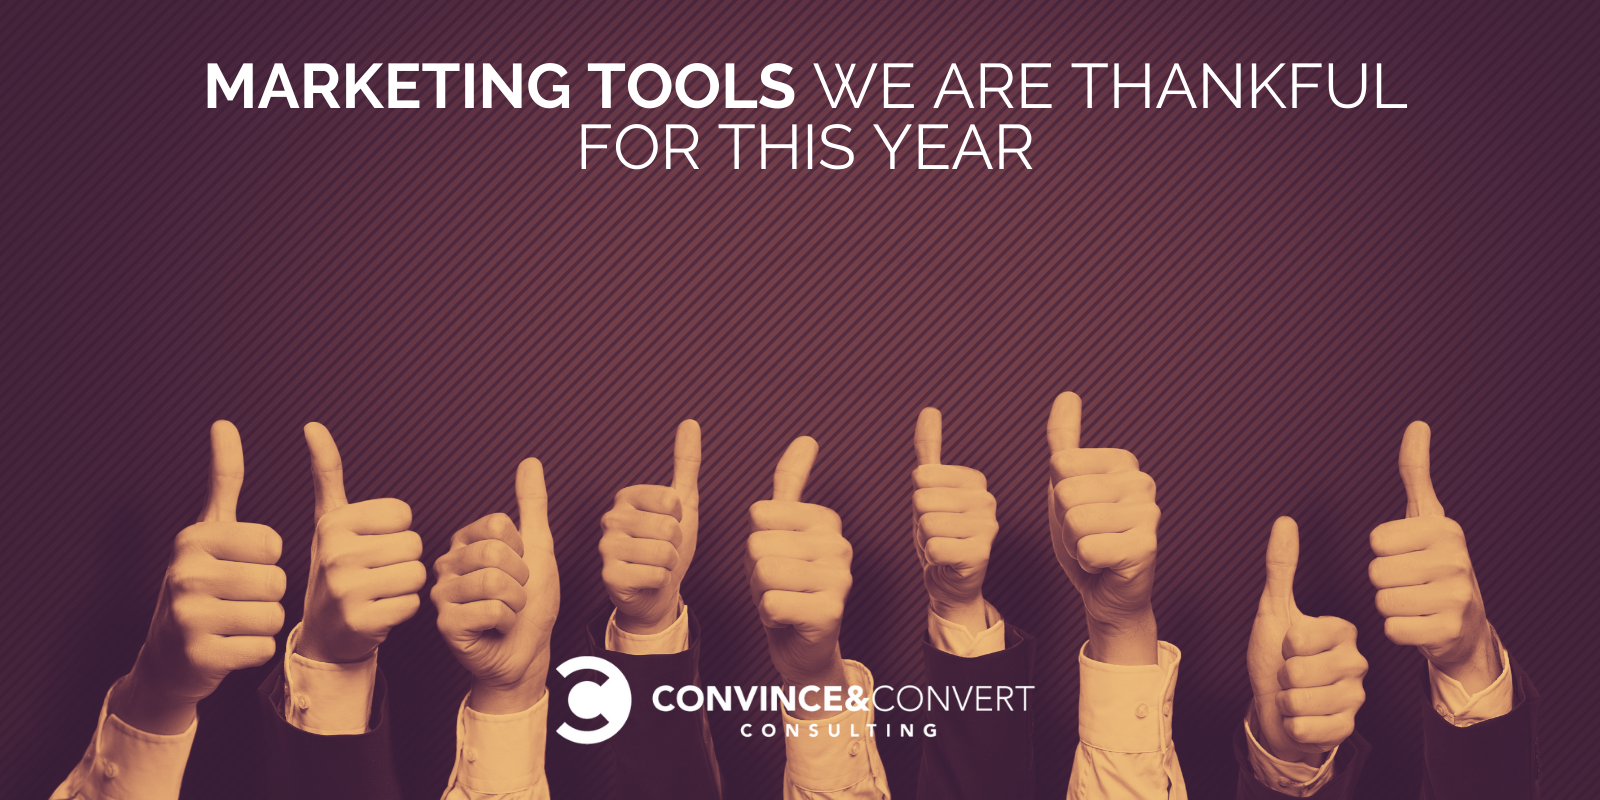 12 Marketing and marketing Tools We Are Thankful for This Year by Convince & Convert